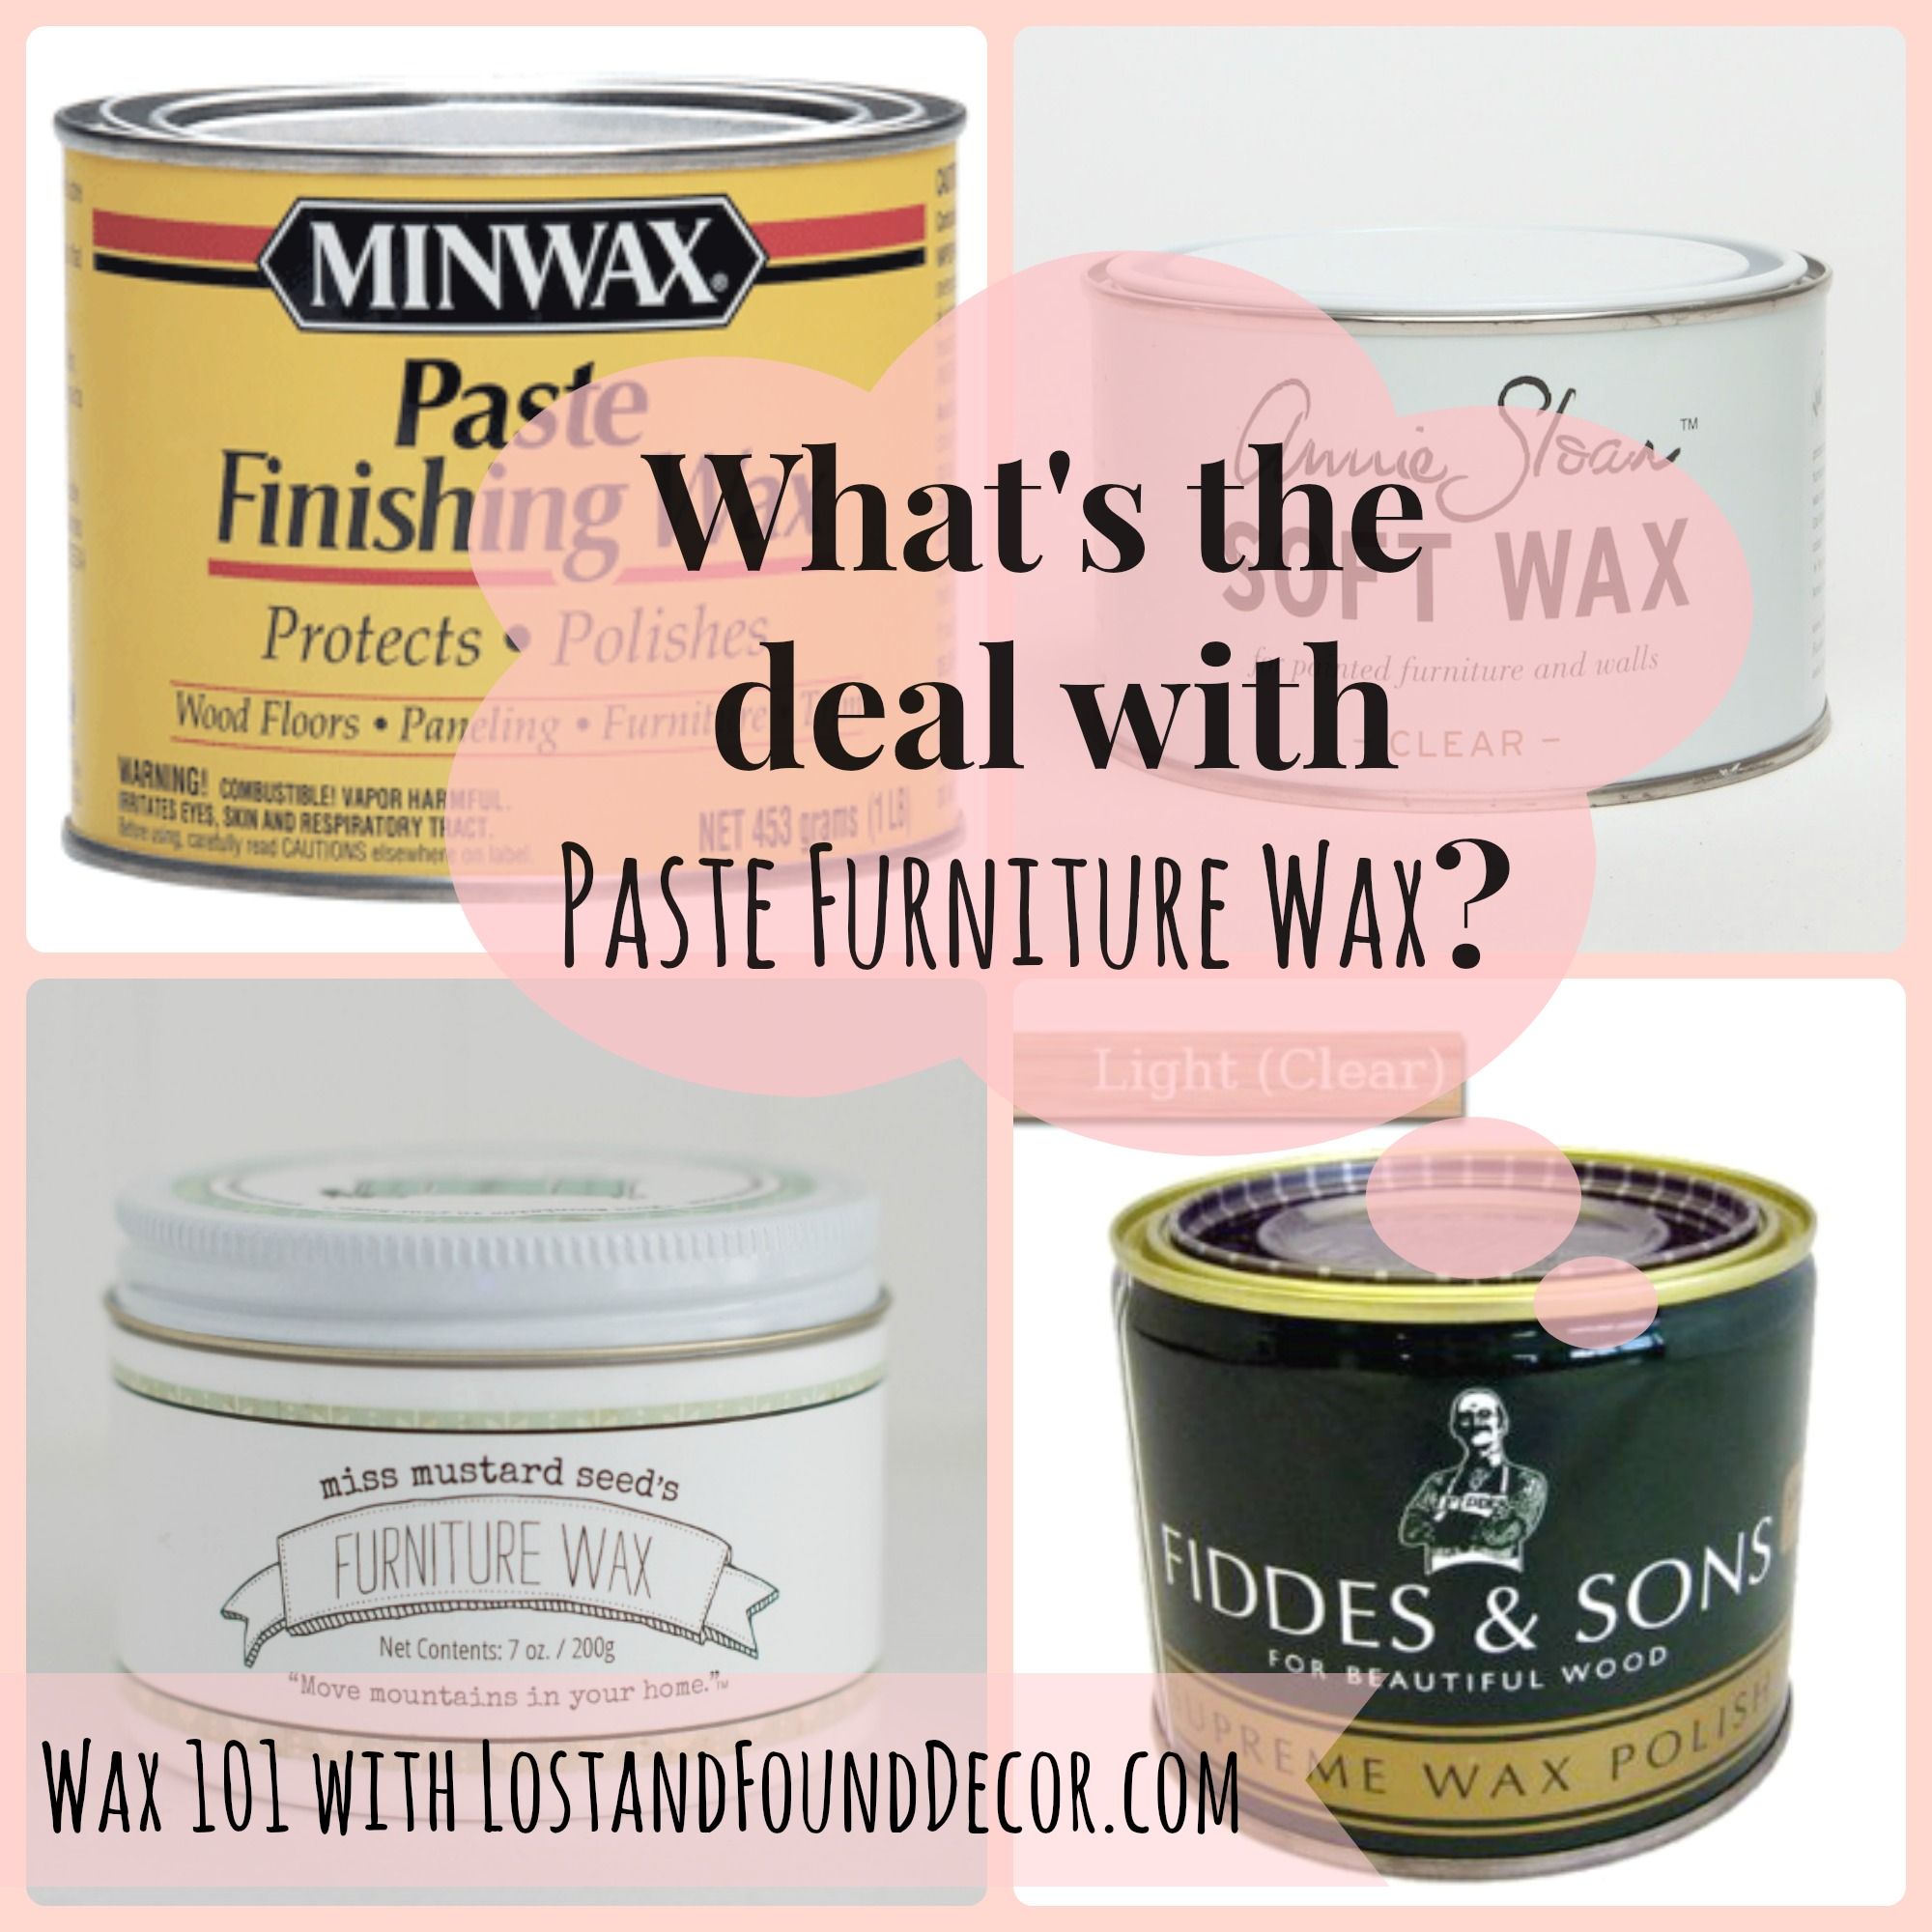 Good Furniture Wax 101: Whatu0027s The Deal With Paste Furniture Wax?